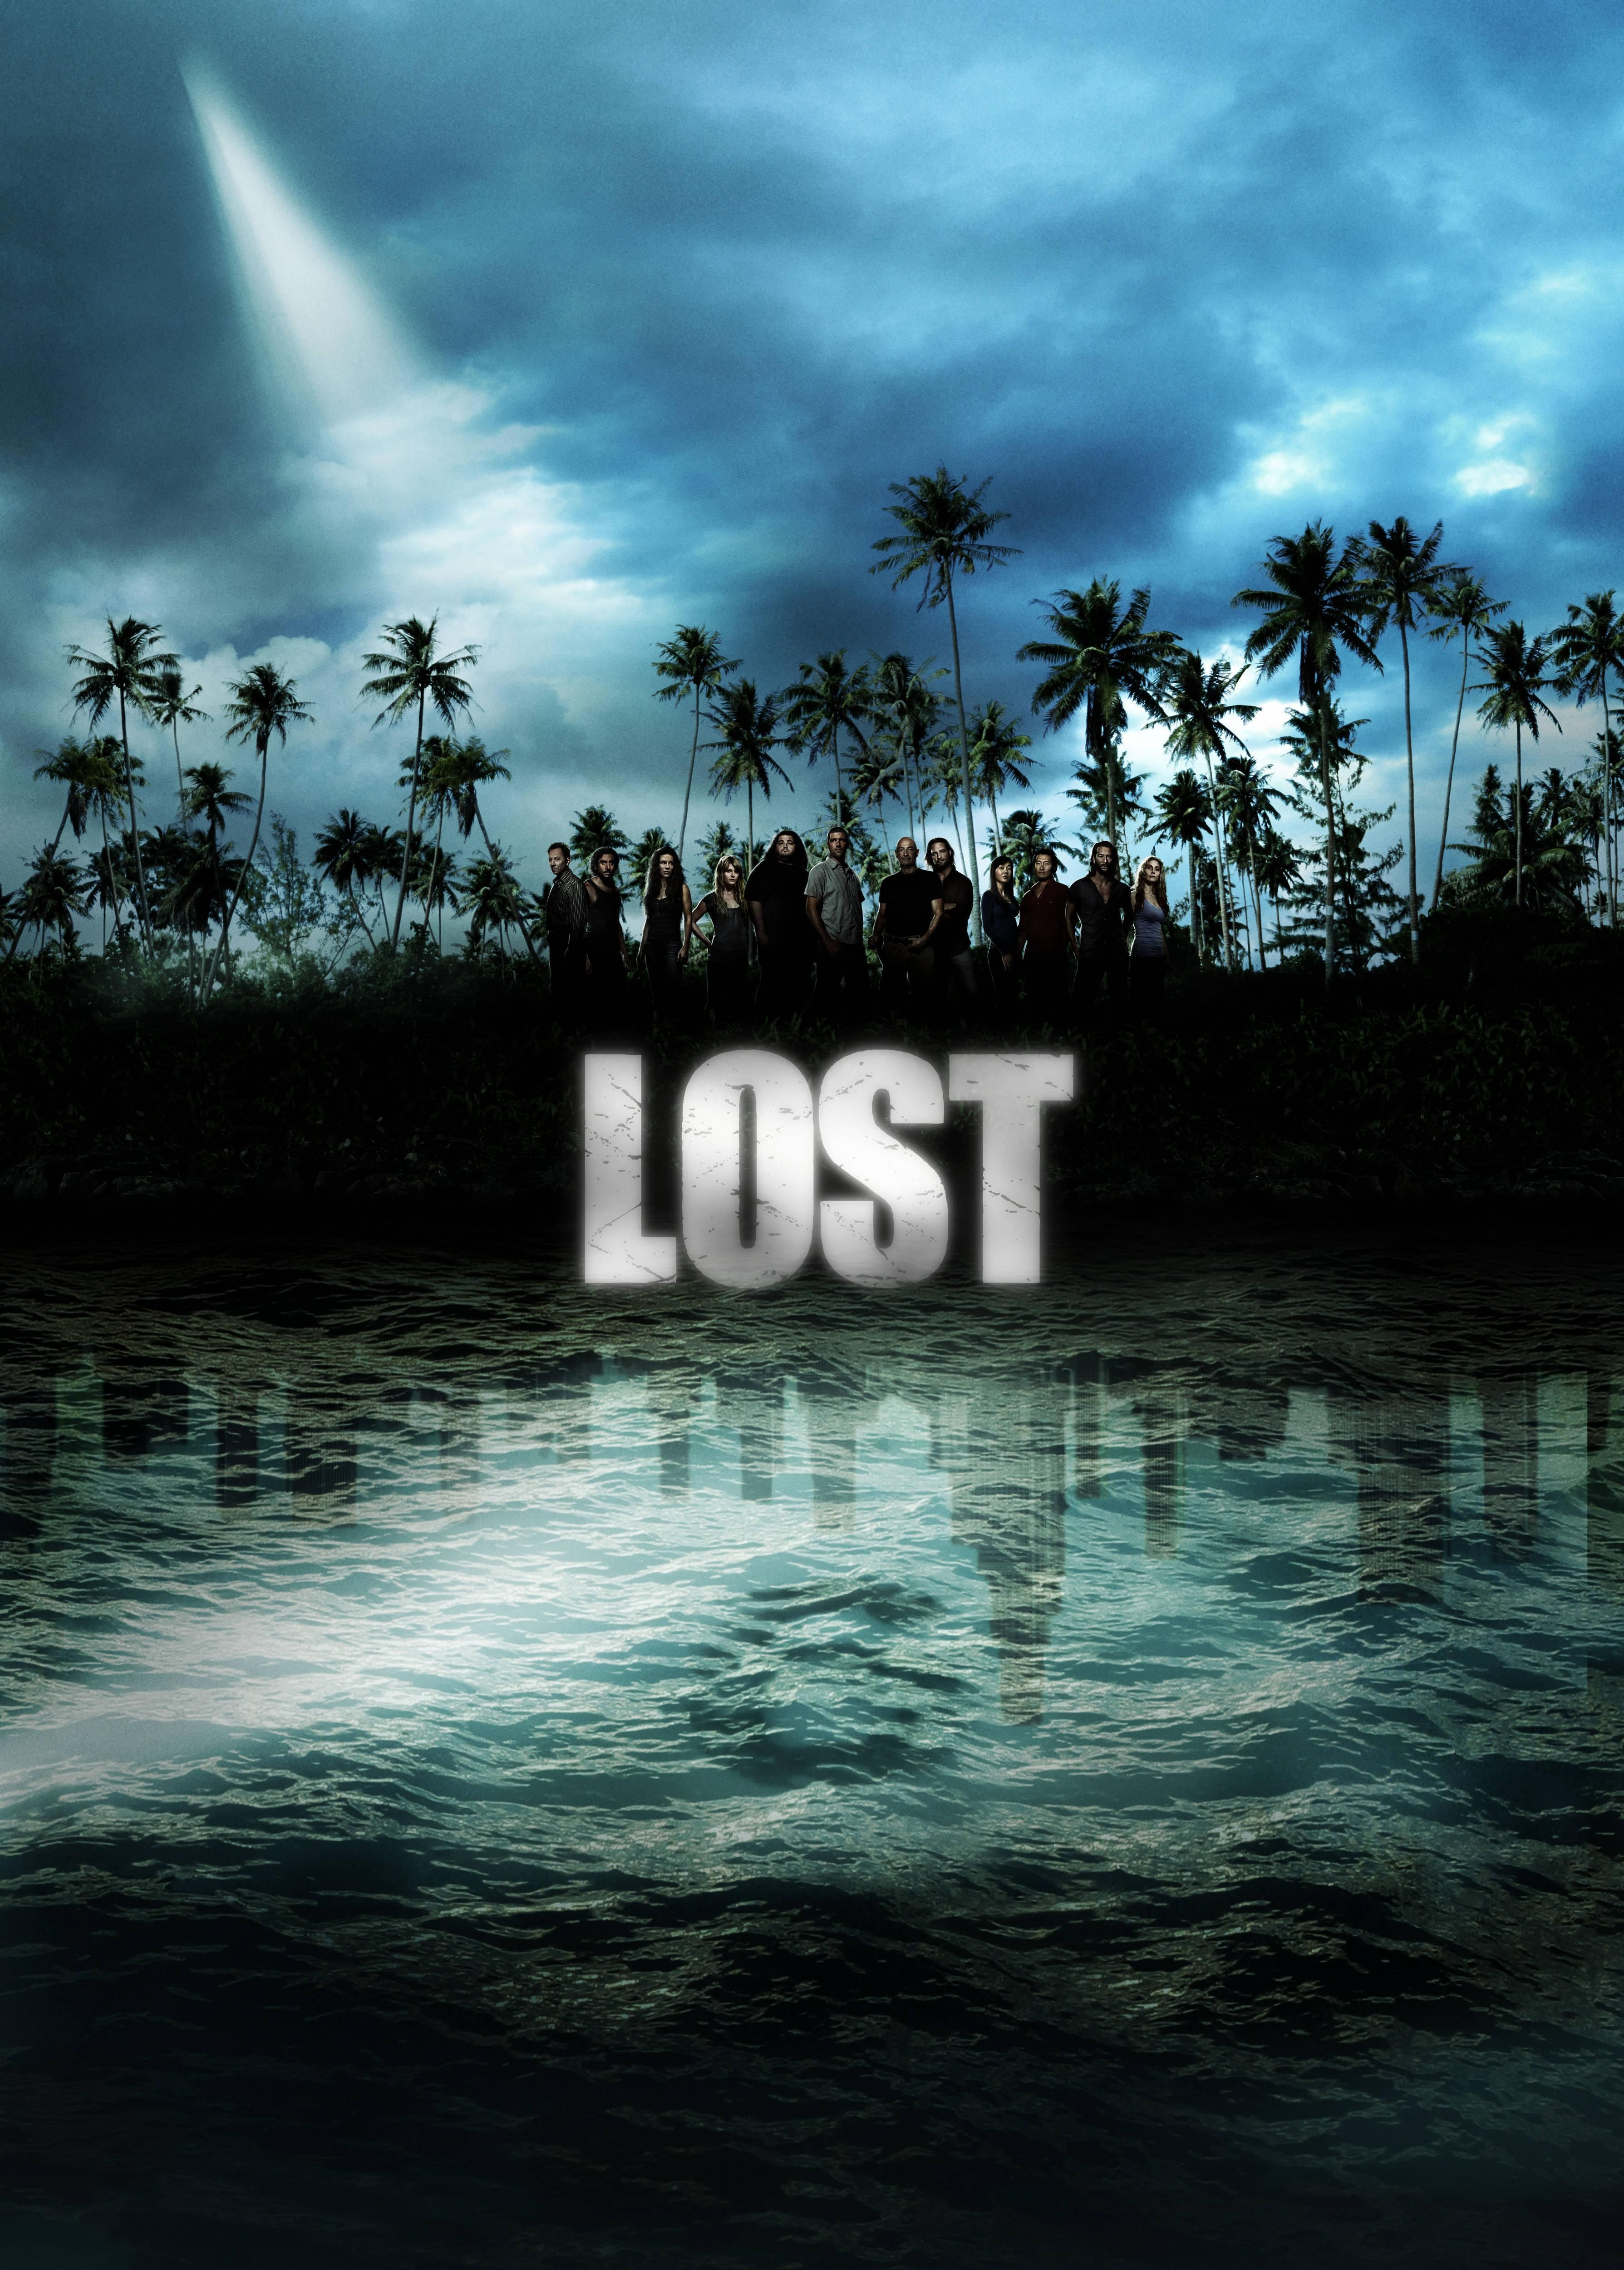 Lost S4 Cast Promotional Photo | Fantasy TV Shows in 2019